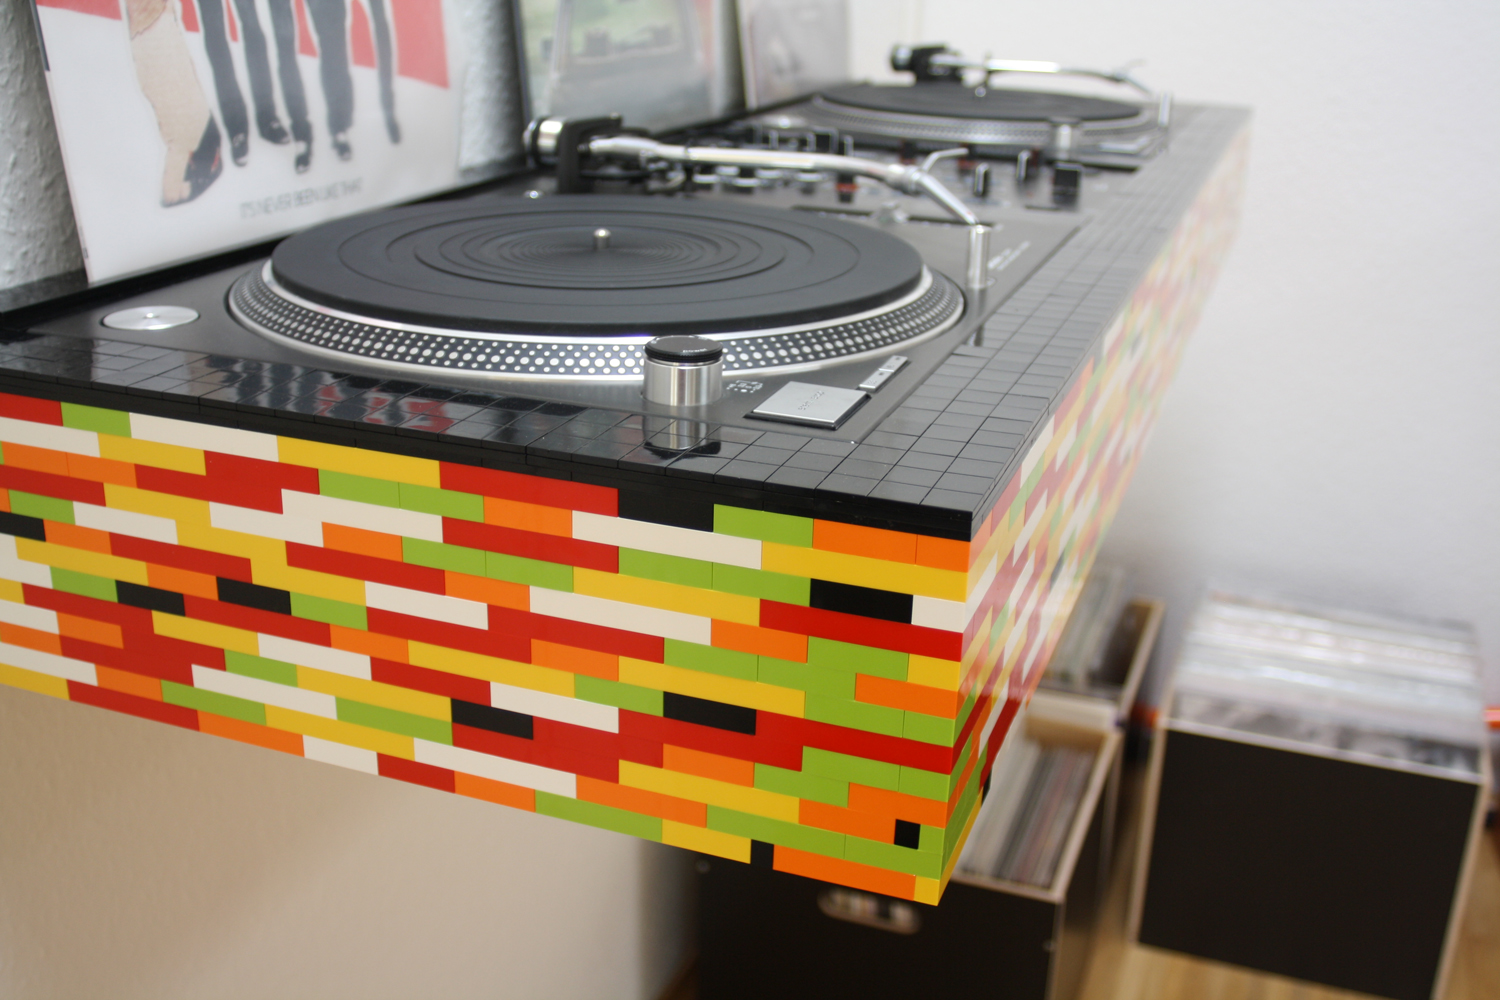 Photo Booth Wand Bauen Dj Pult On Pinterest Dj Booth Turntable And Dj Setup